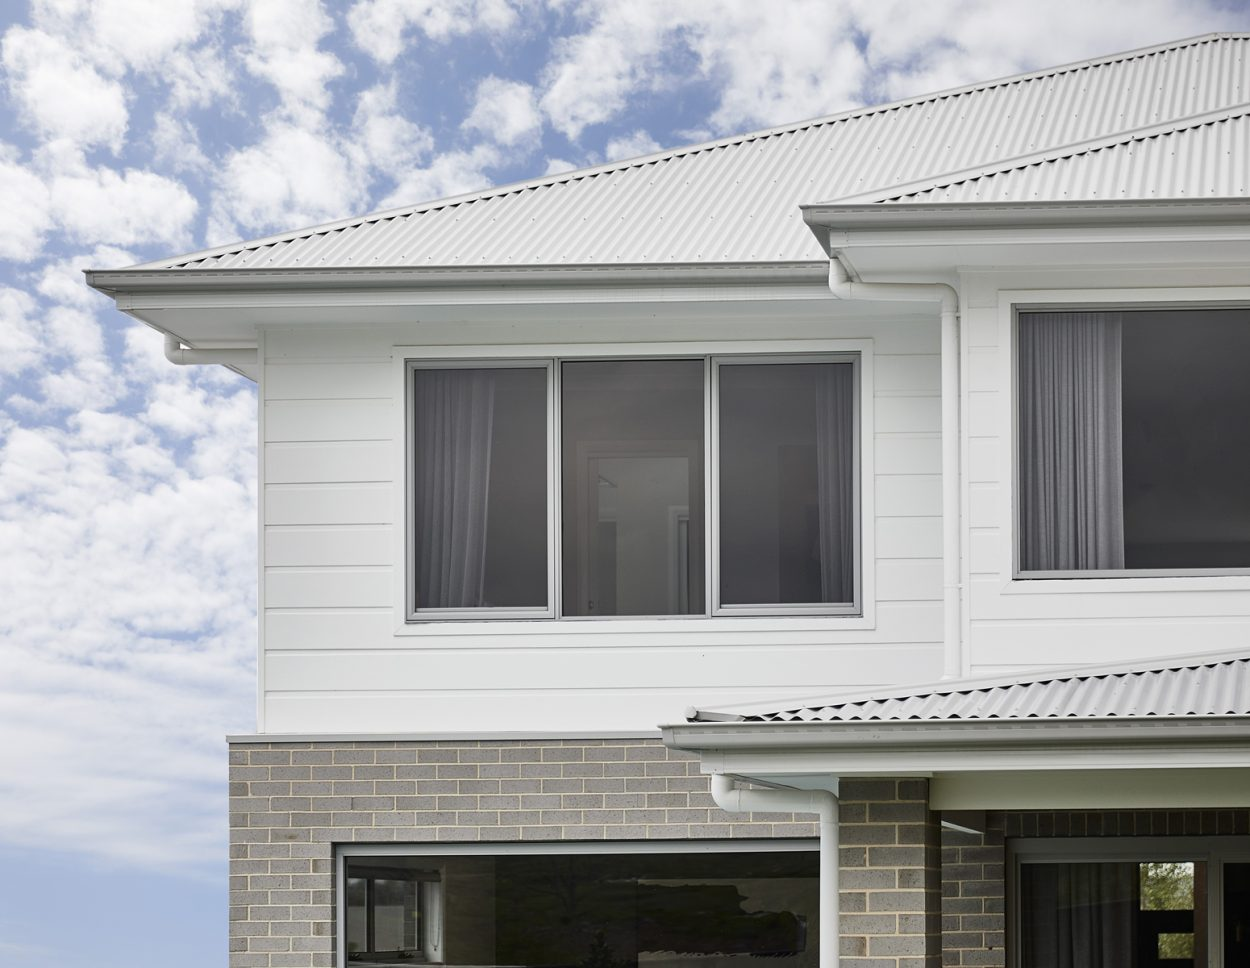 2nd storey home in clad finish with Horizon awning windows in Shale Grey